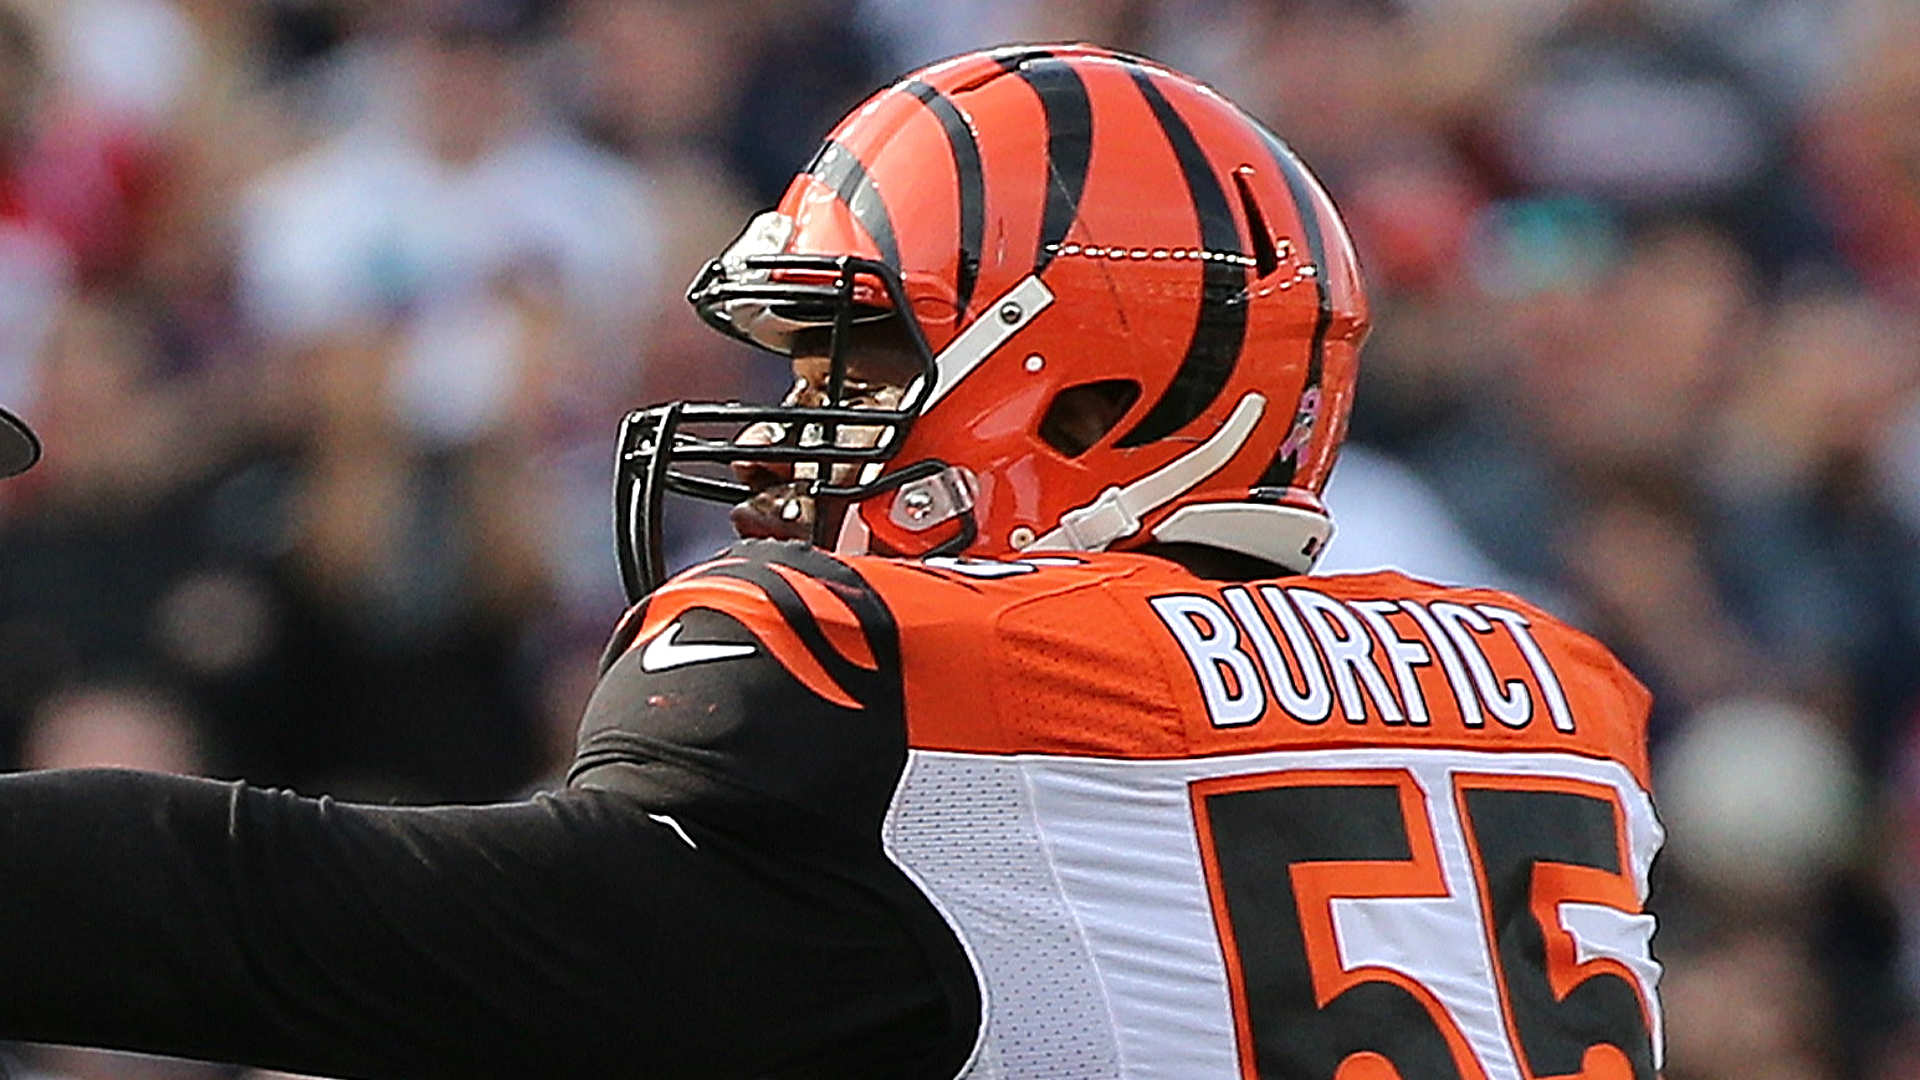 NFL reportedly will review Vontaze Burfict hit on Martellus Bennett